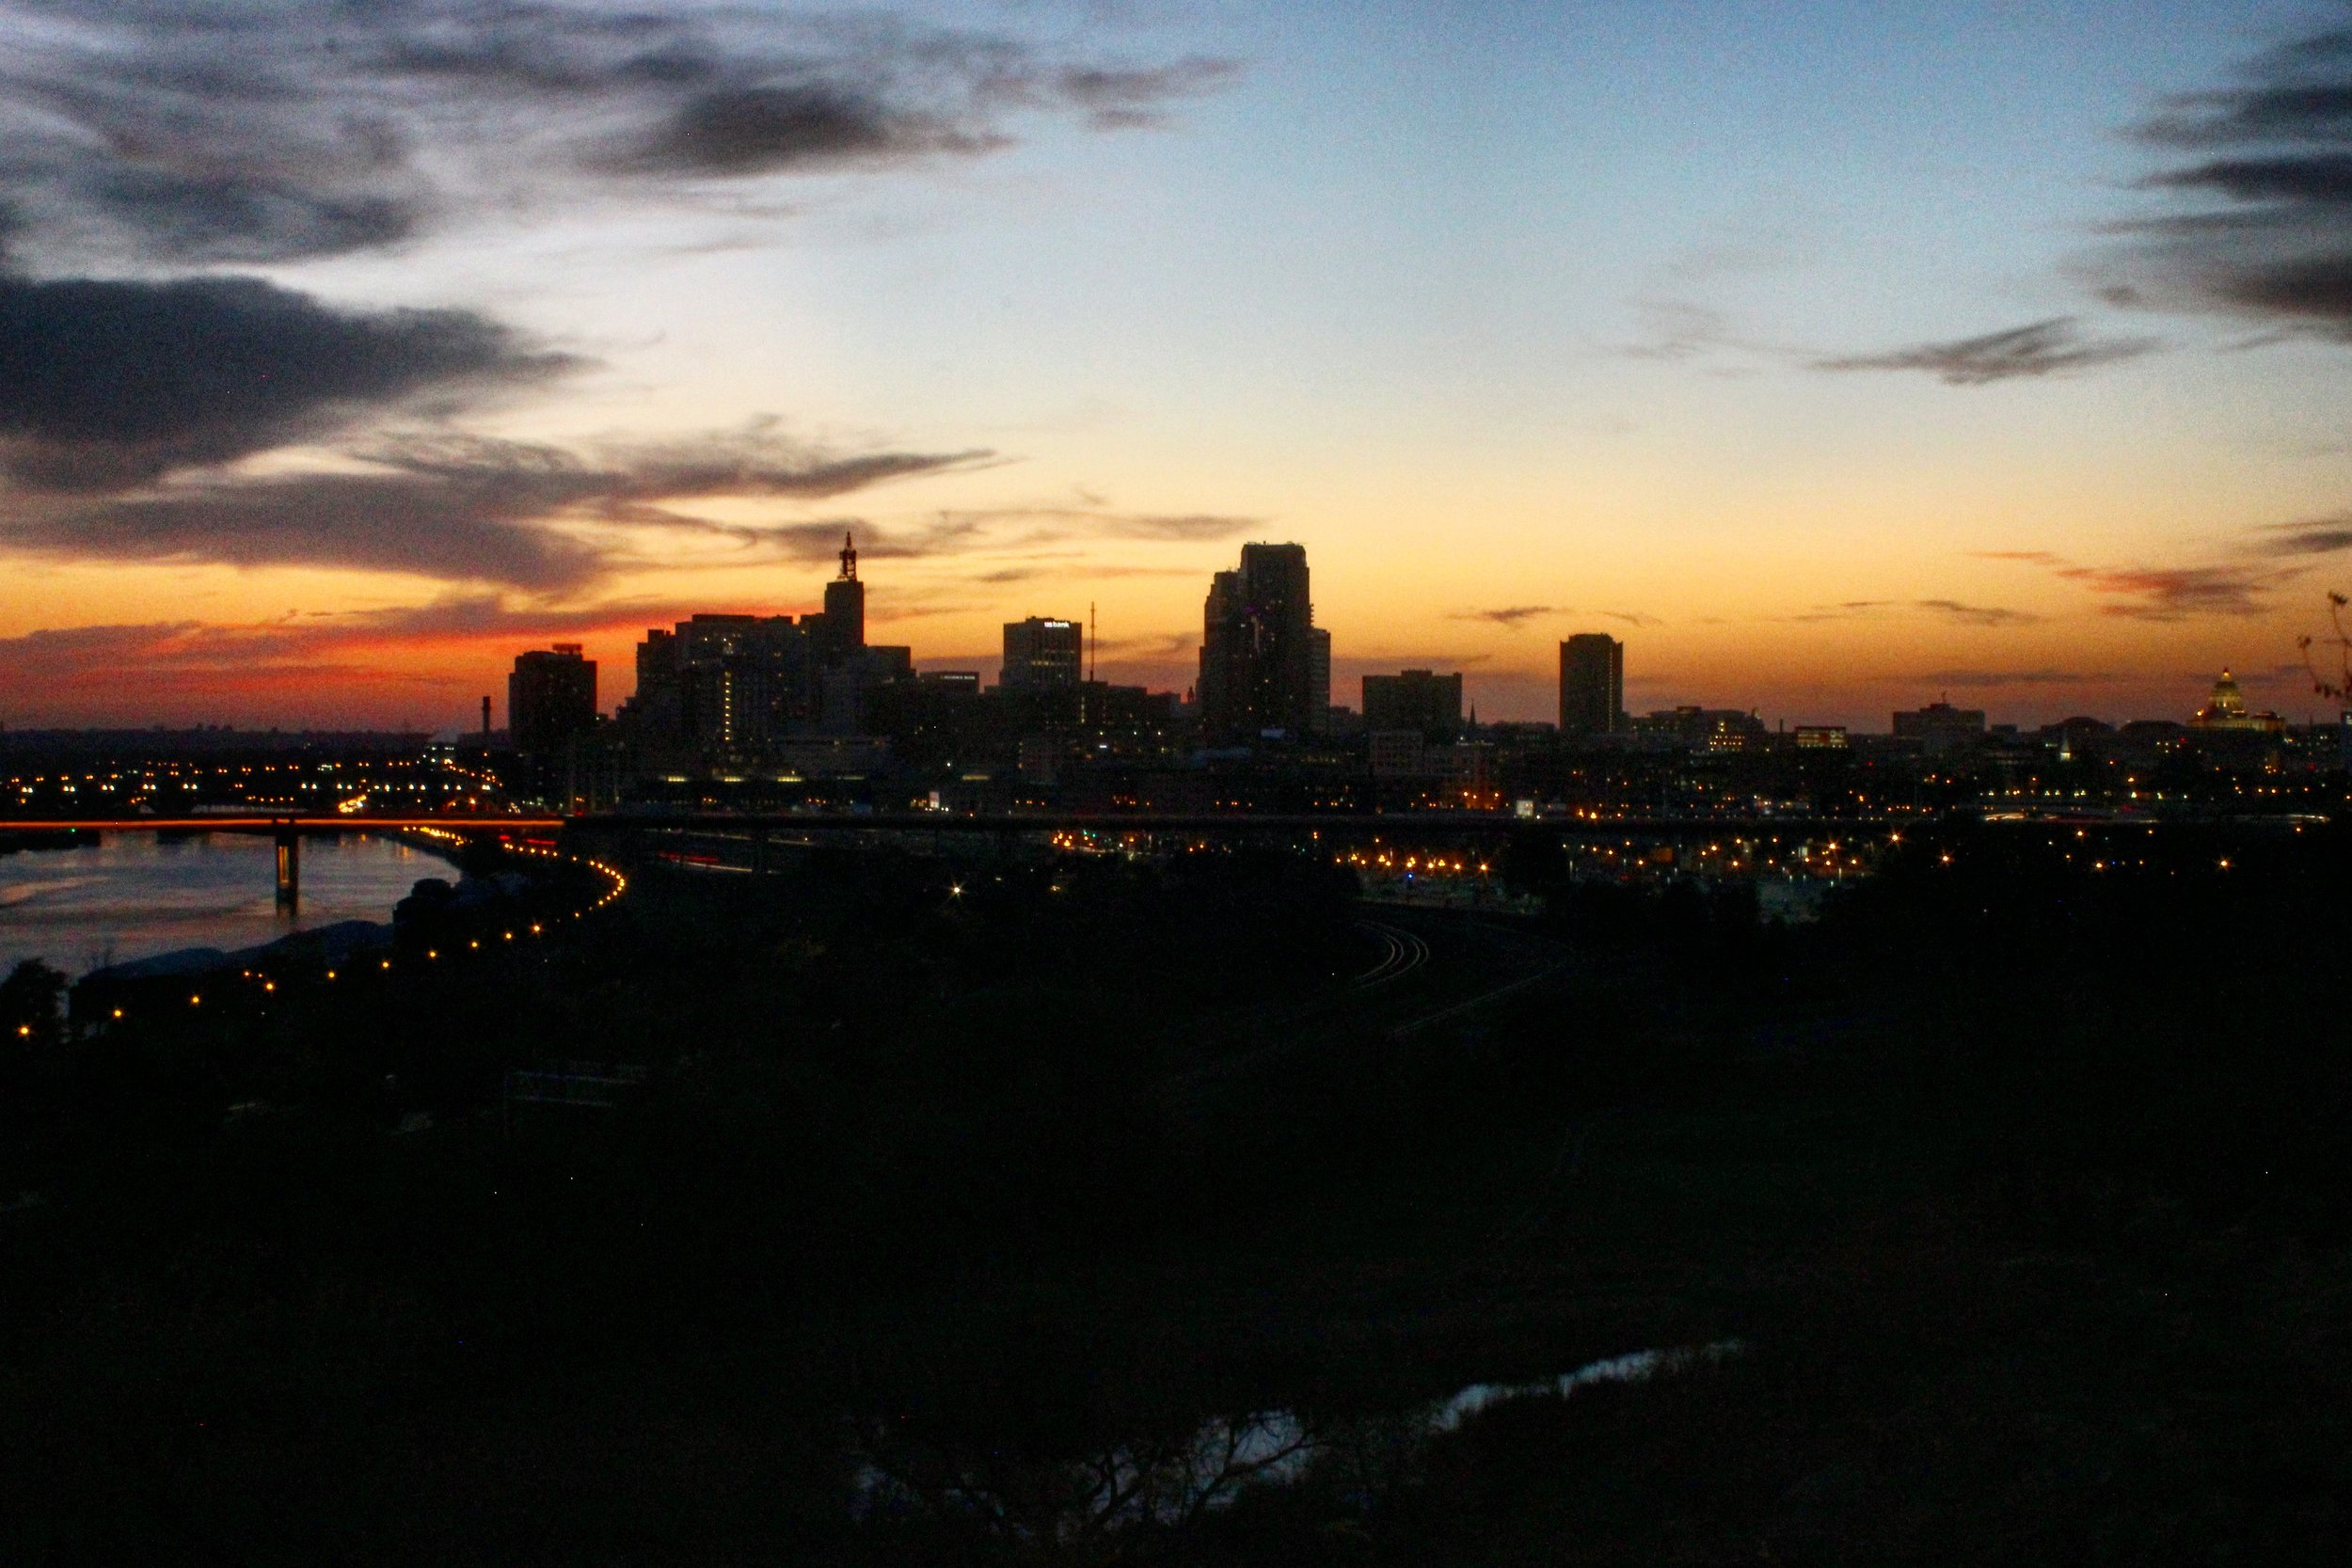 Not an official 'stop' but I had to snag this sunset skyline pic of St Paul as I came back home after 12 hours on the road.